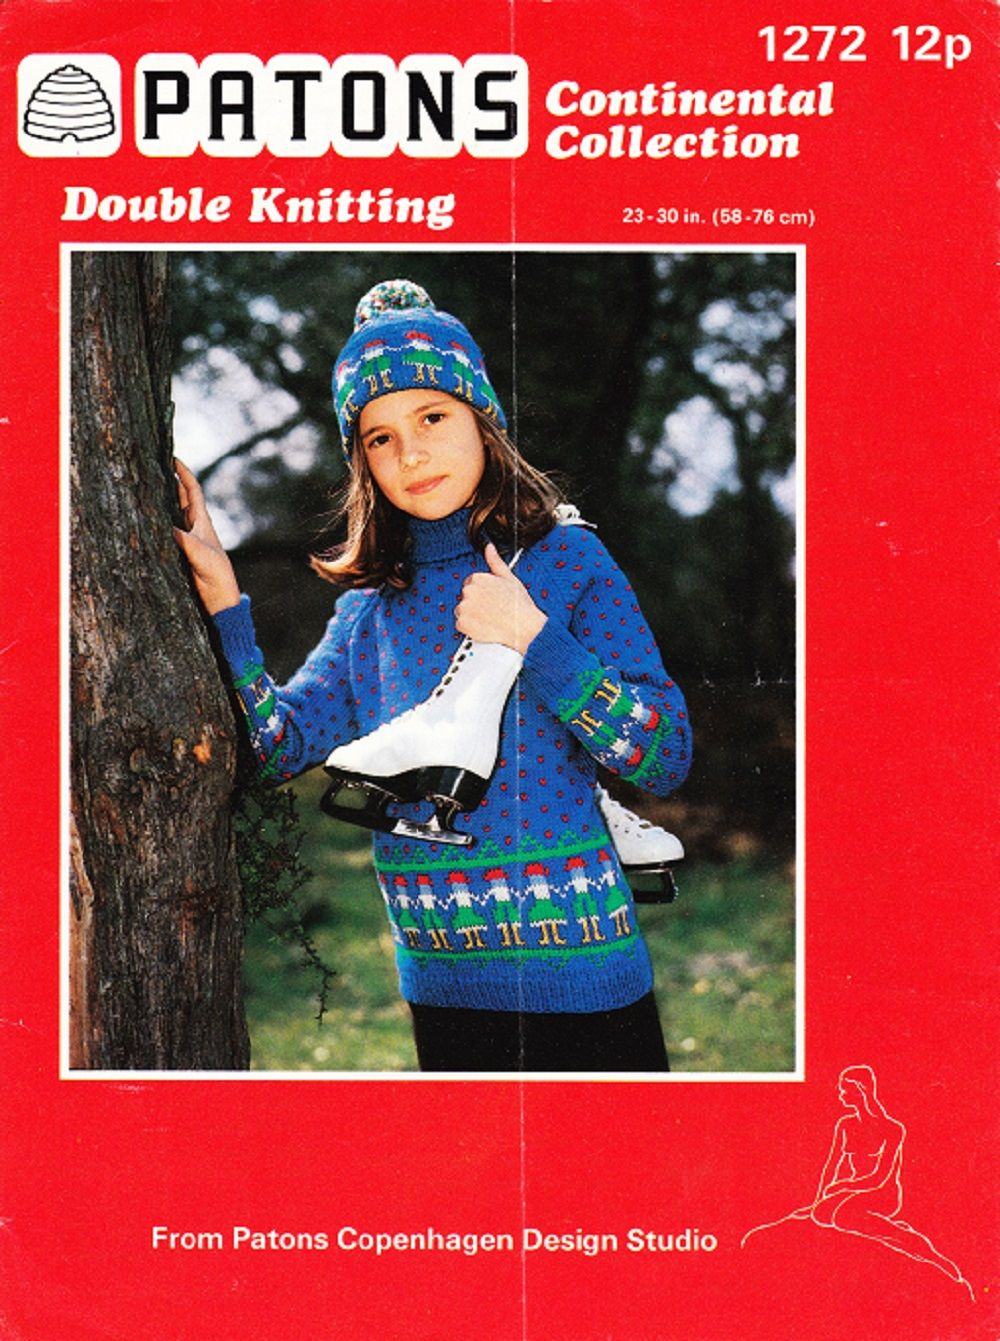 574f068e0 Patons Continental Collection Knitting Pattern 1272